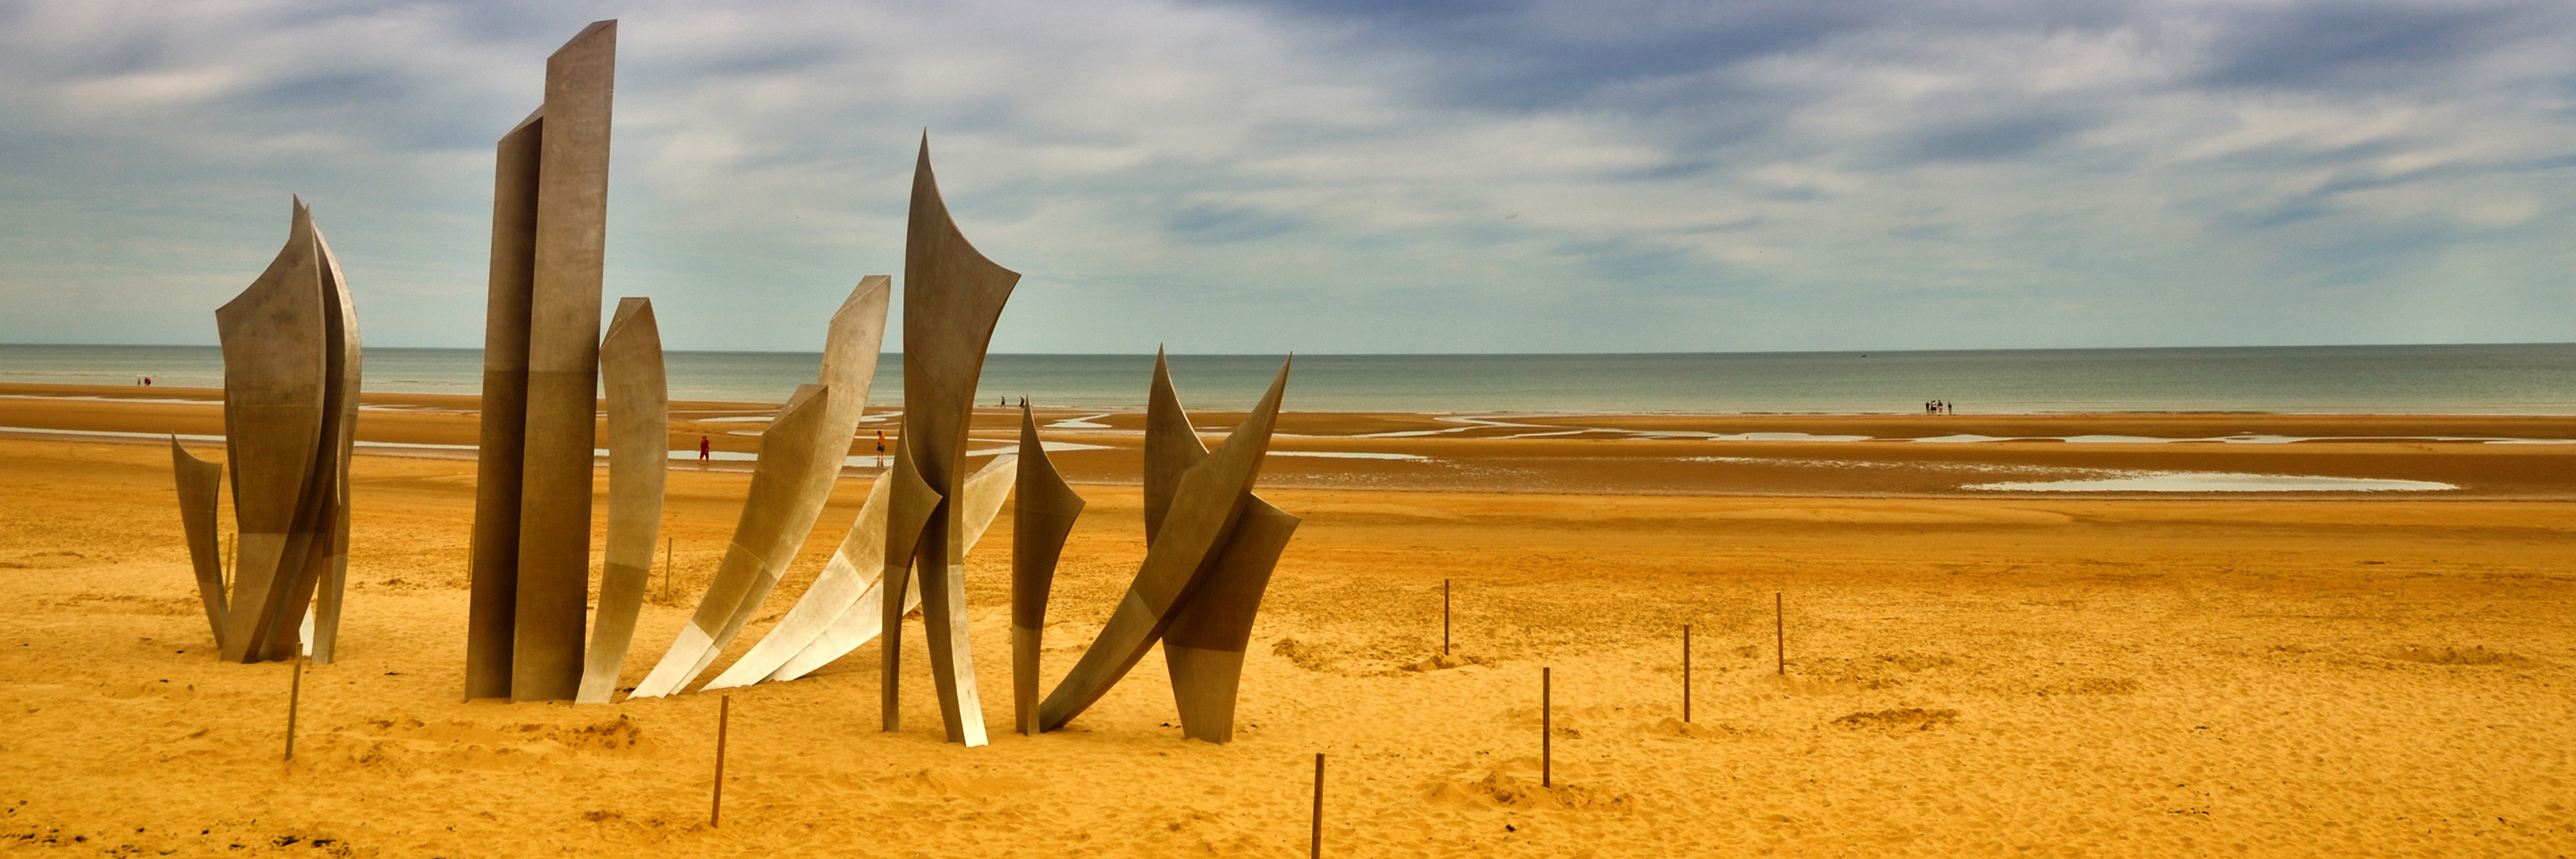 Grand France WWII Remembrance & History Cruise (Southbound)